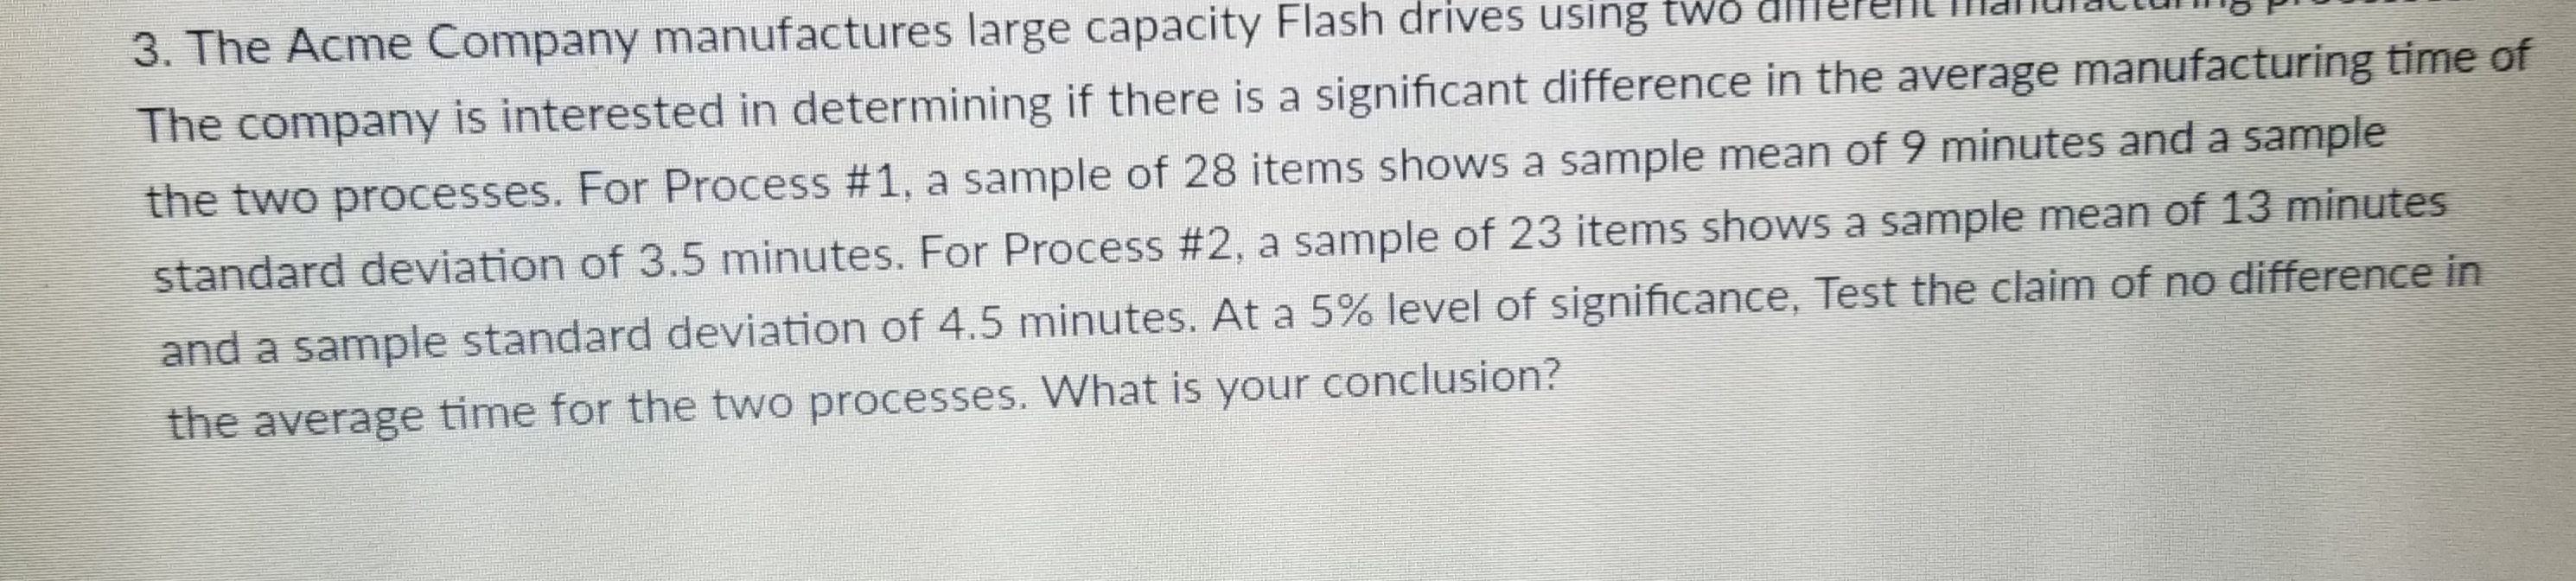 e Acme Company manufactures large capacity Flash drives using tws dlllere The company is interested in determining if there is a significant difference in the average manufacturing time of the two processes. For Process #1, a sample of 28 items shows a sample mean of 9 minutes and a sample standard deviation of 3.5 minutes. For Process #2, a sample of 23 items shows a sample mean of 13 minutes and a sample standard deviation of 4.5 minutes. At a 5% level of significance, Test the claim of no difference in the average time for the two processes. What is your conclusion?